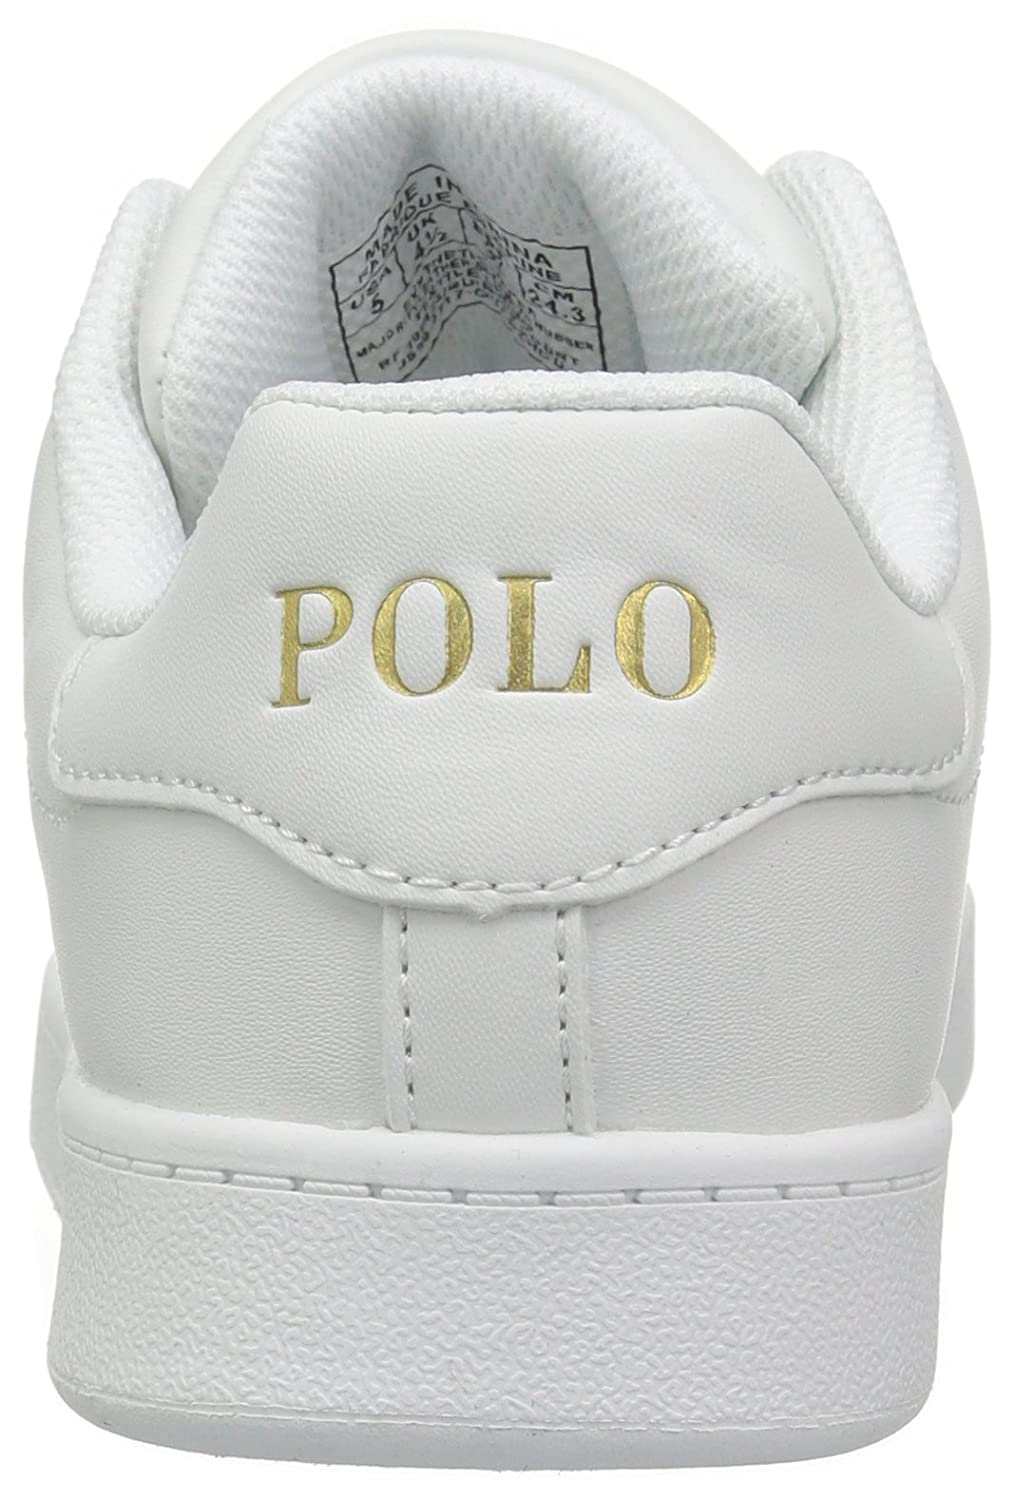 c6df0a90 Polo Ralph Lauren QUINCEY COURT Sneakers Child, White Tumbled White ...